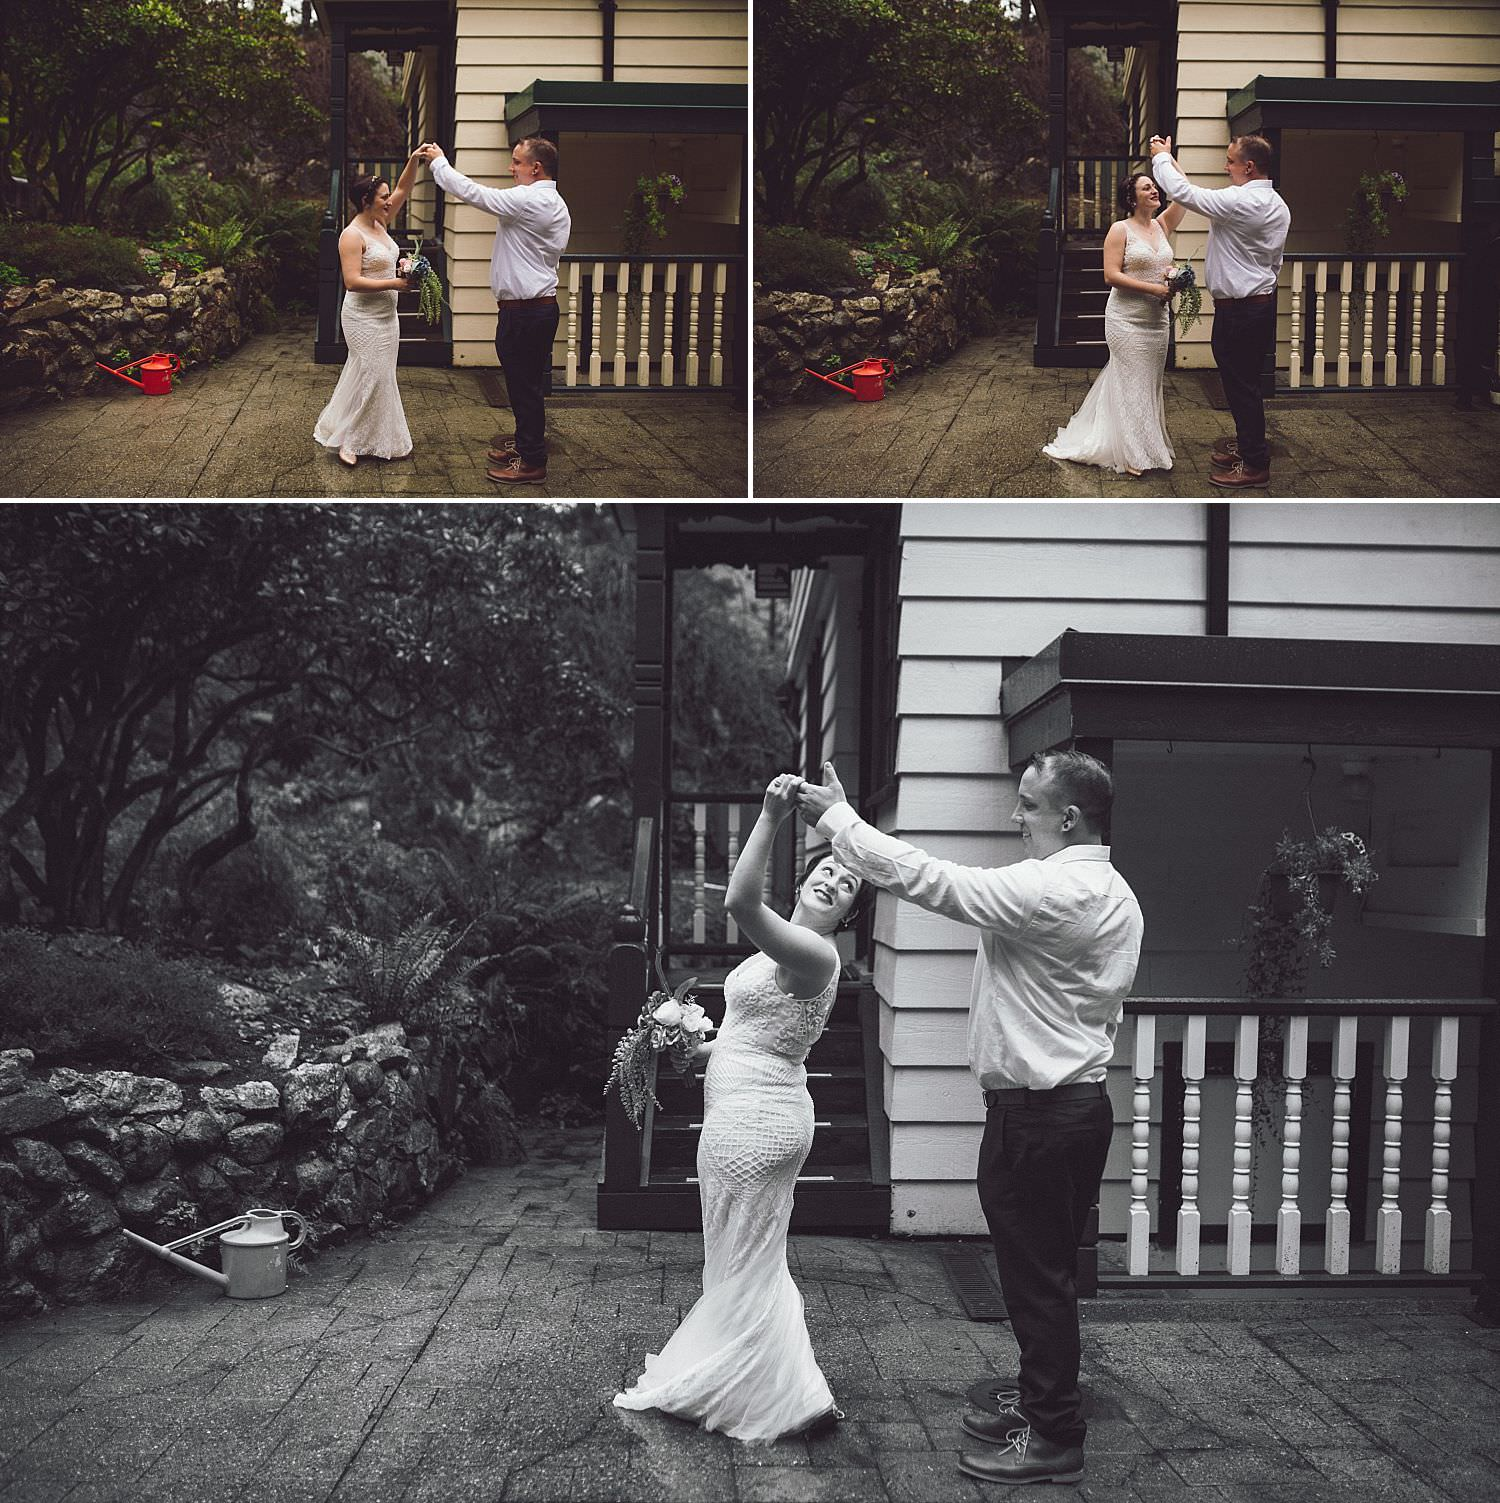 Groom gives his bride a twirl in her wedding dress